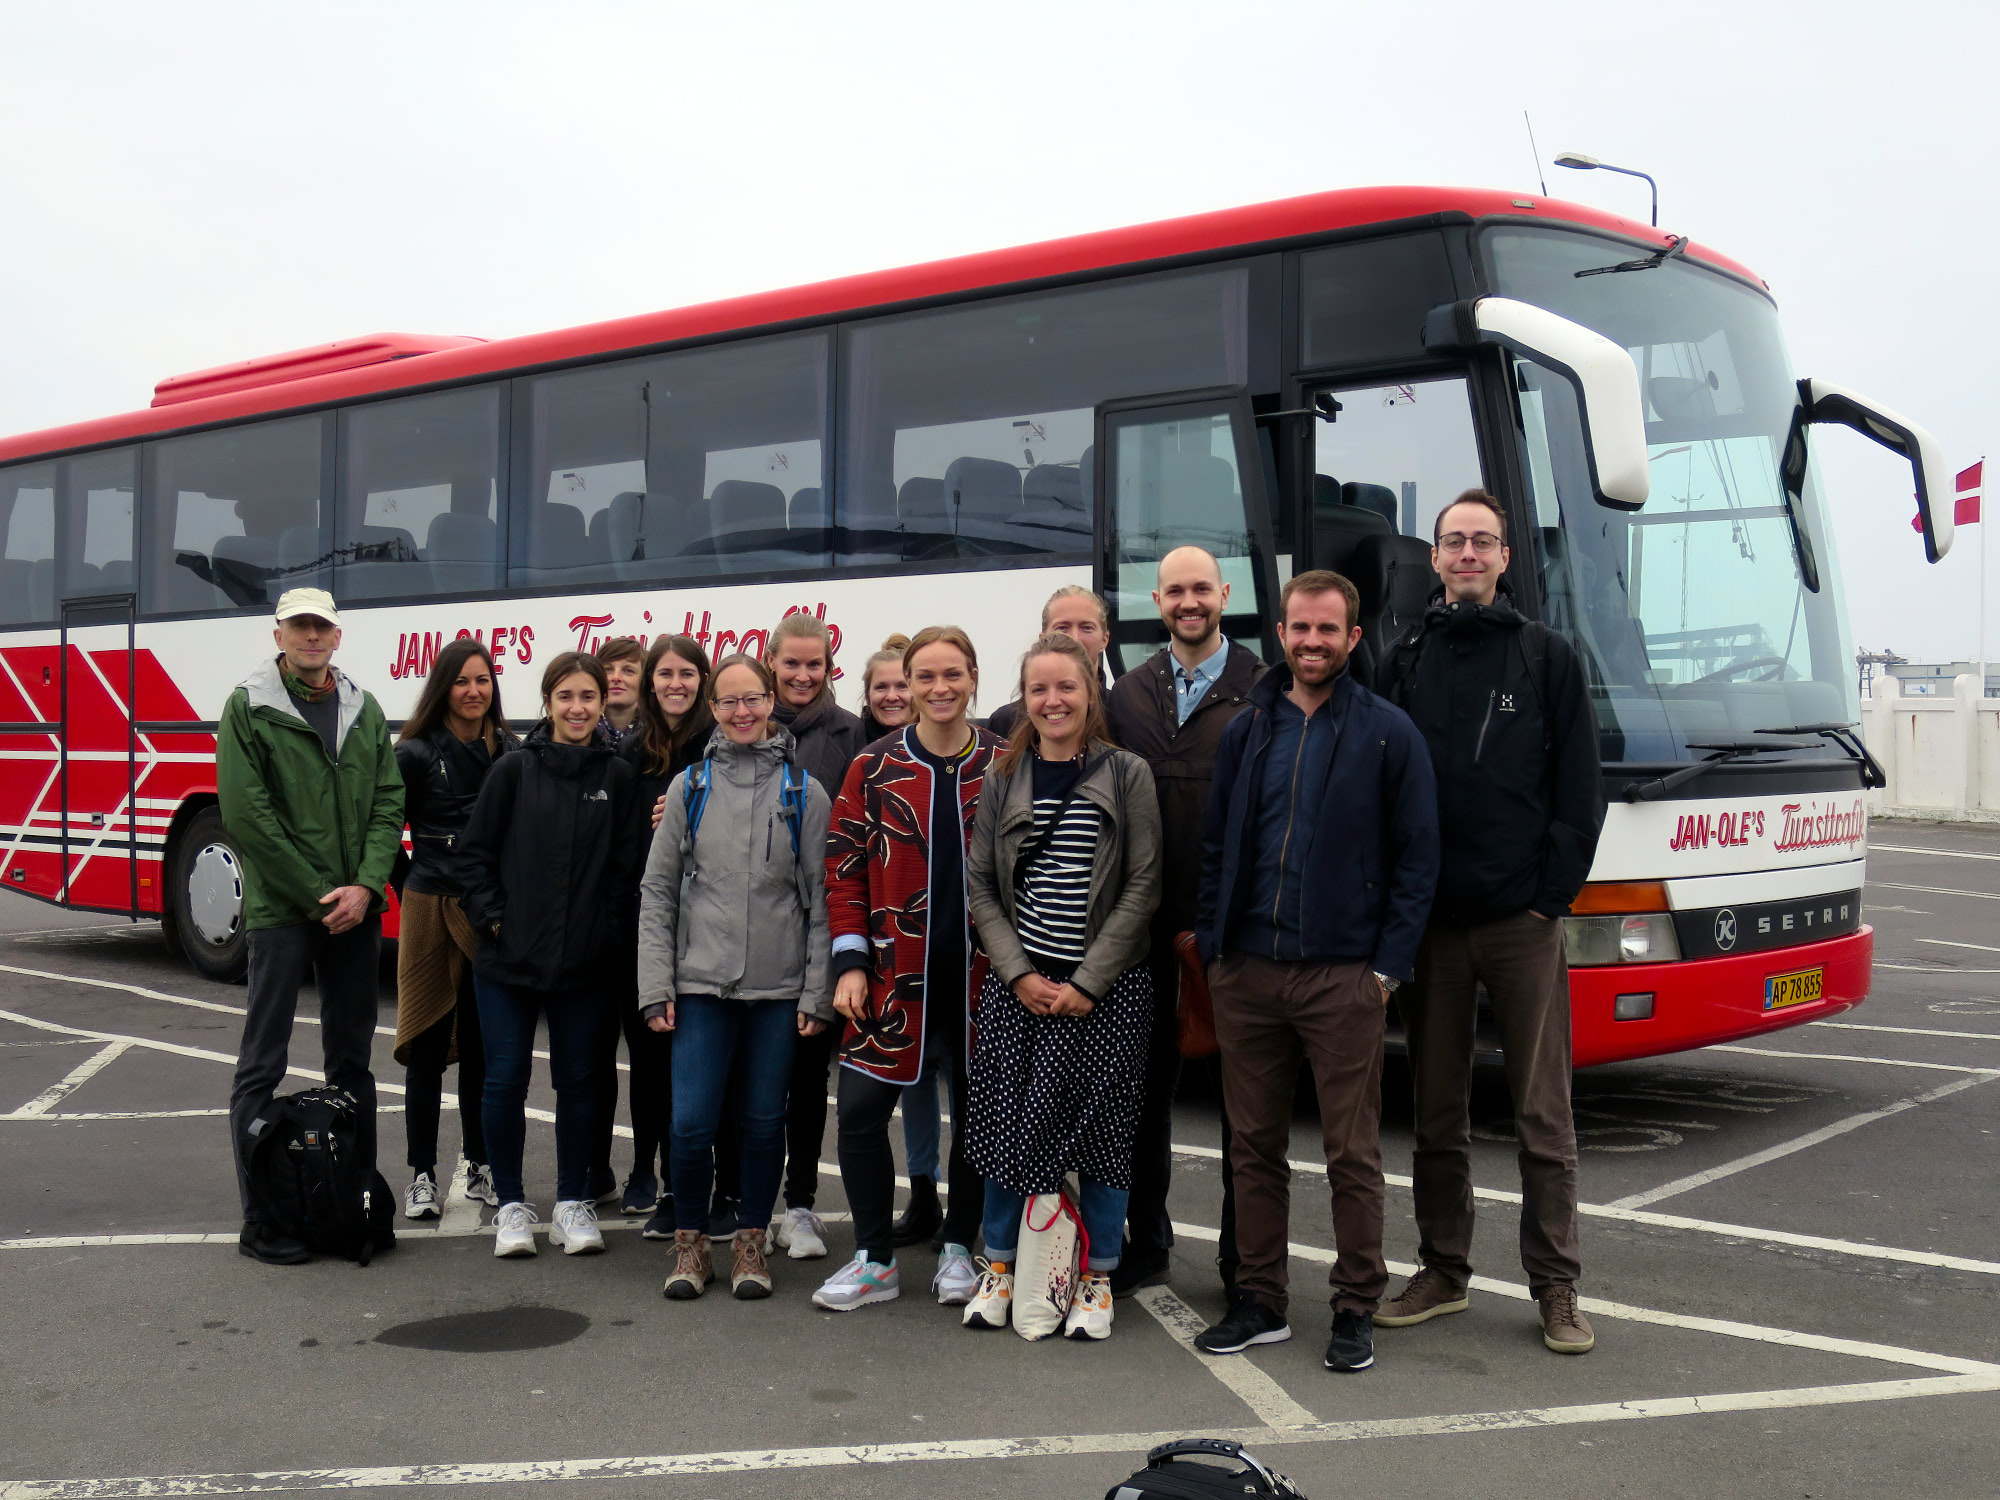 The group upon arrival on Bornholm